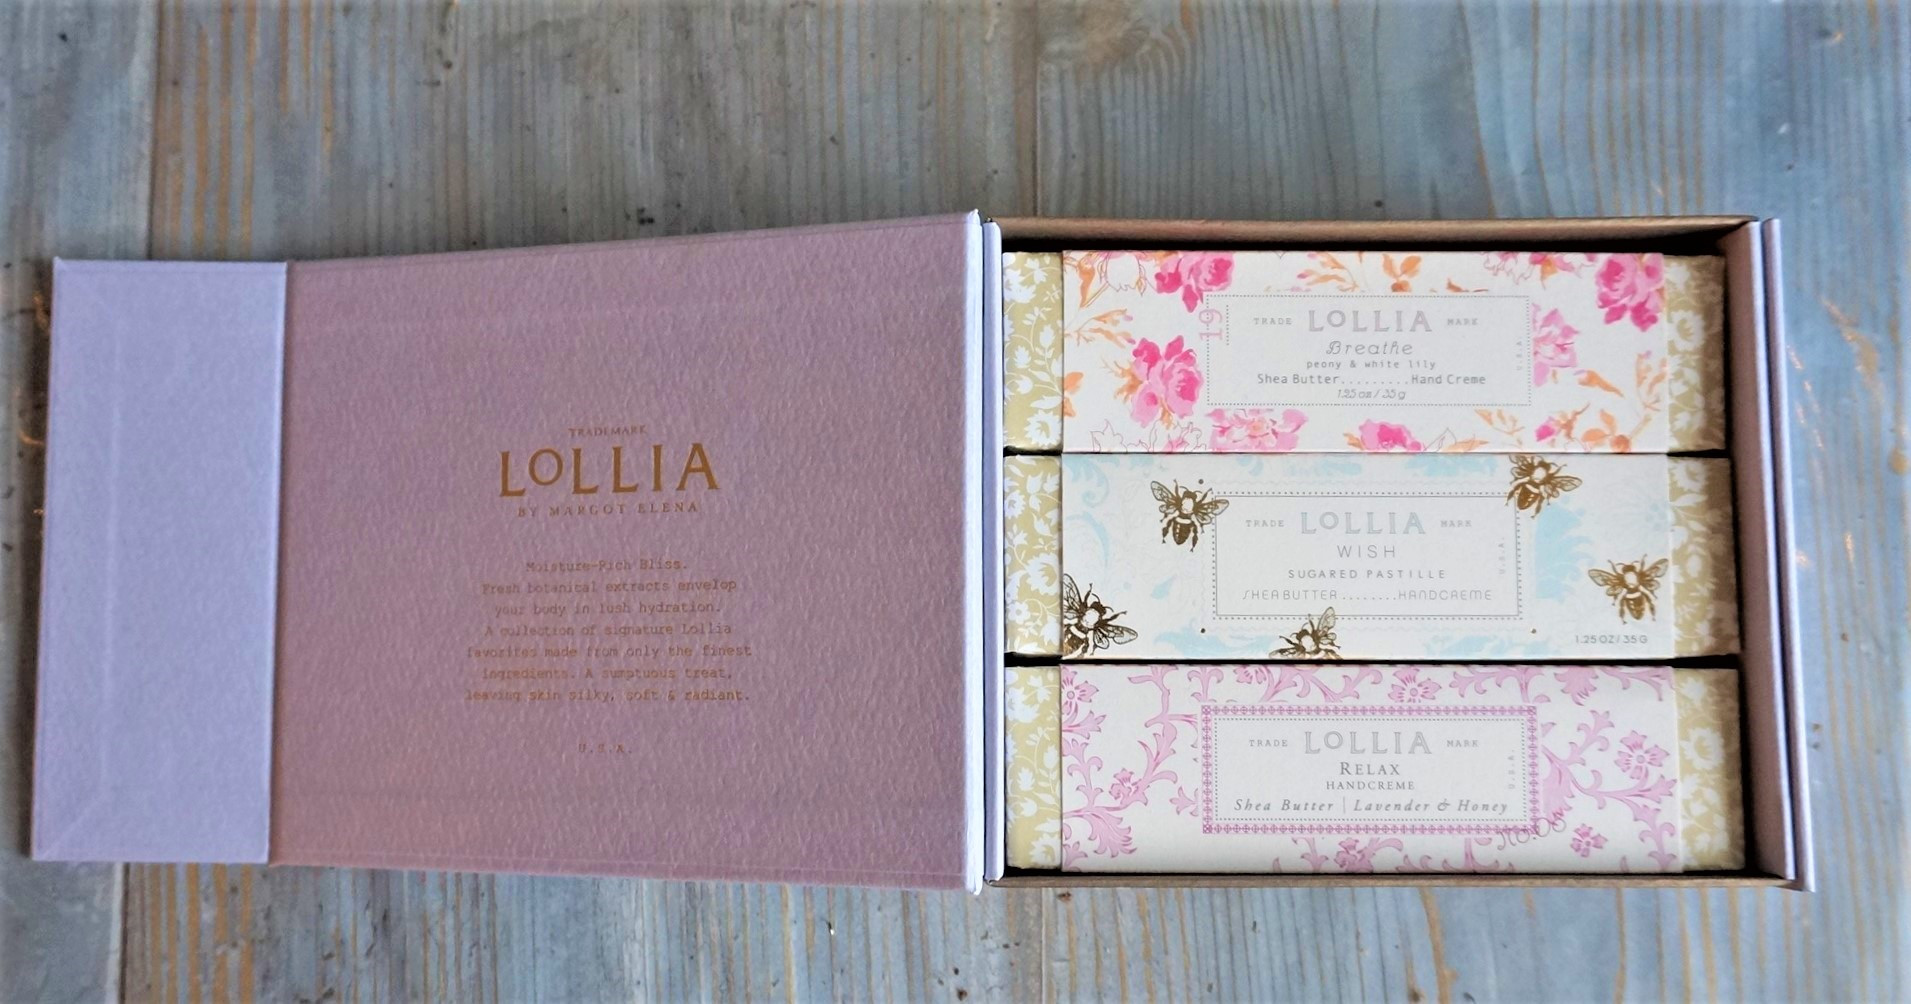 Lollia Handcreme Selection